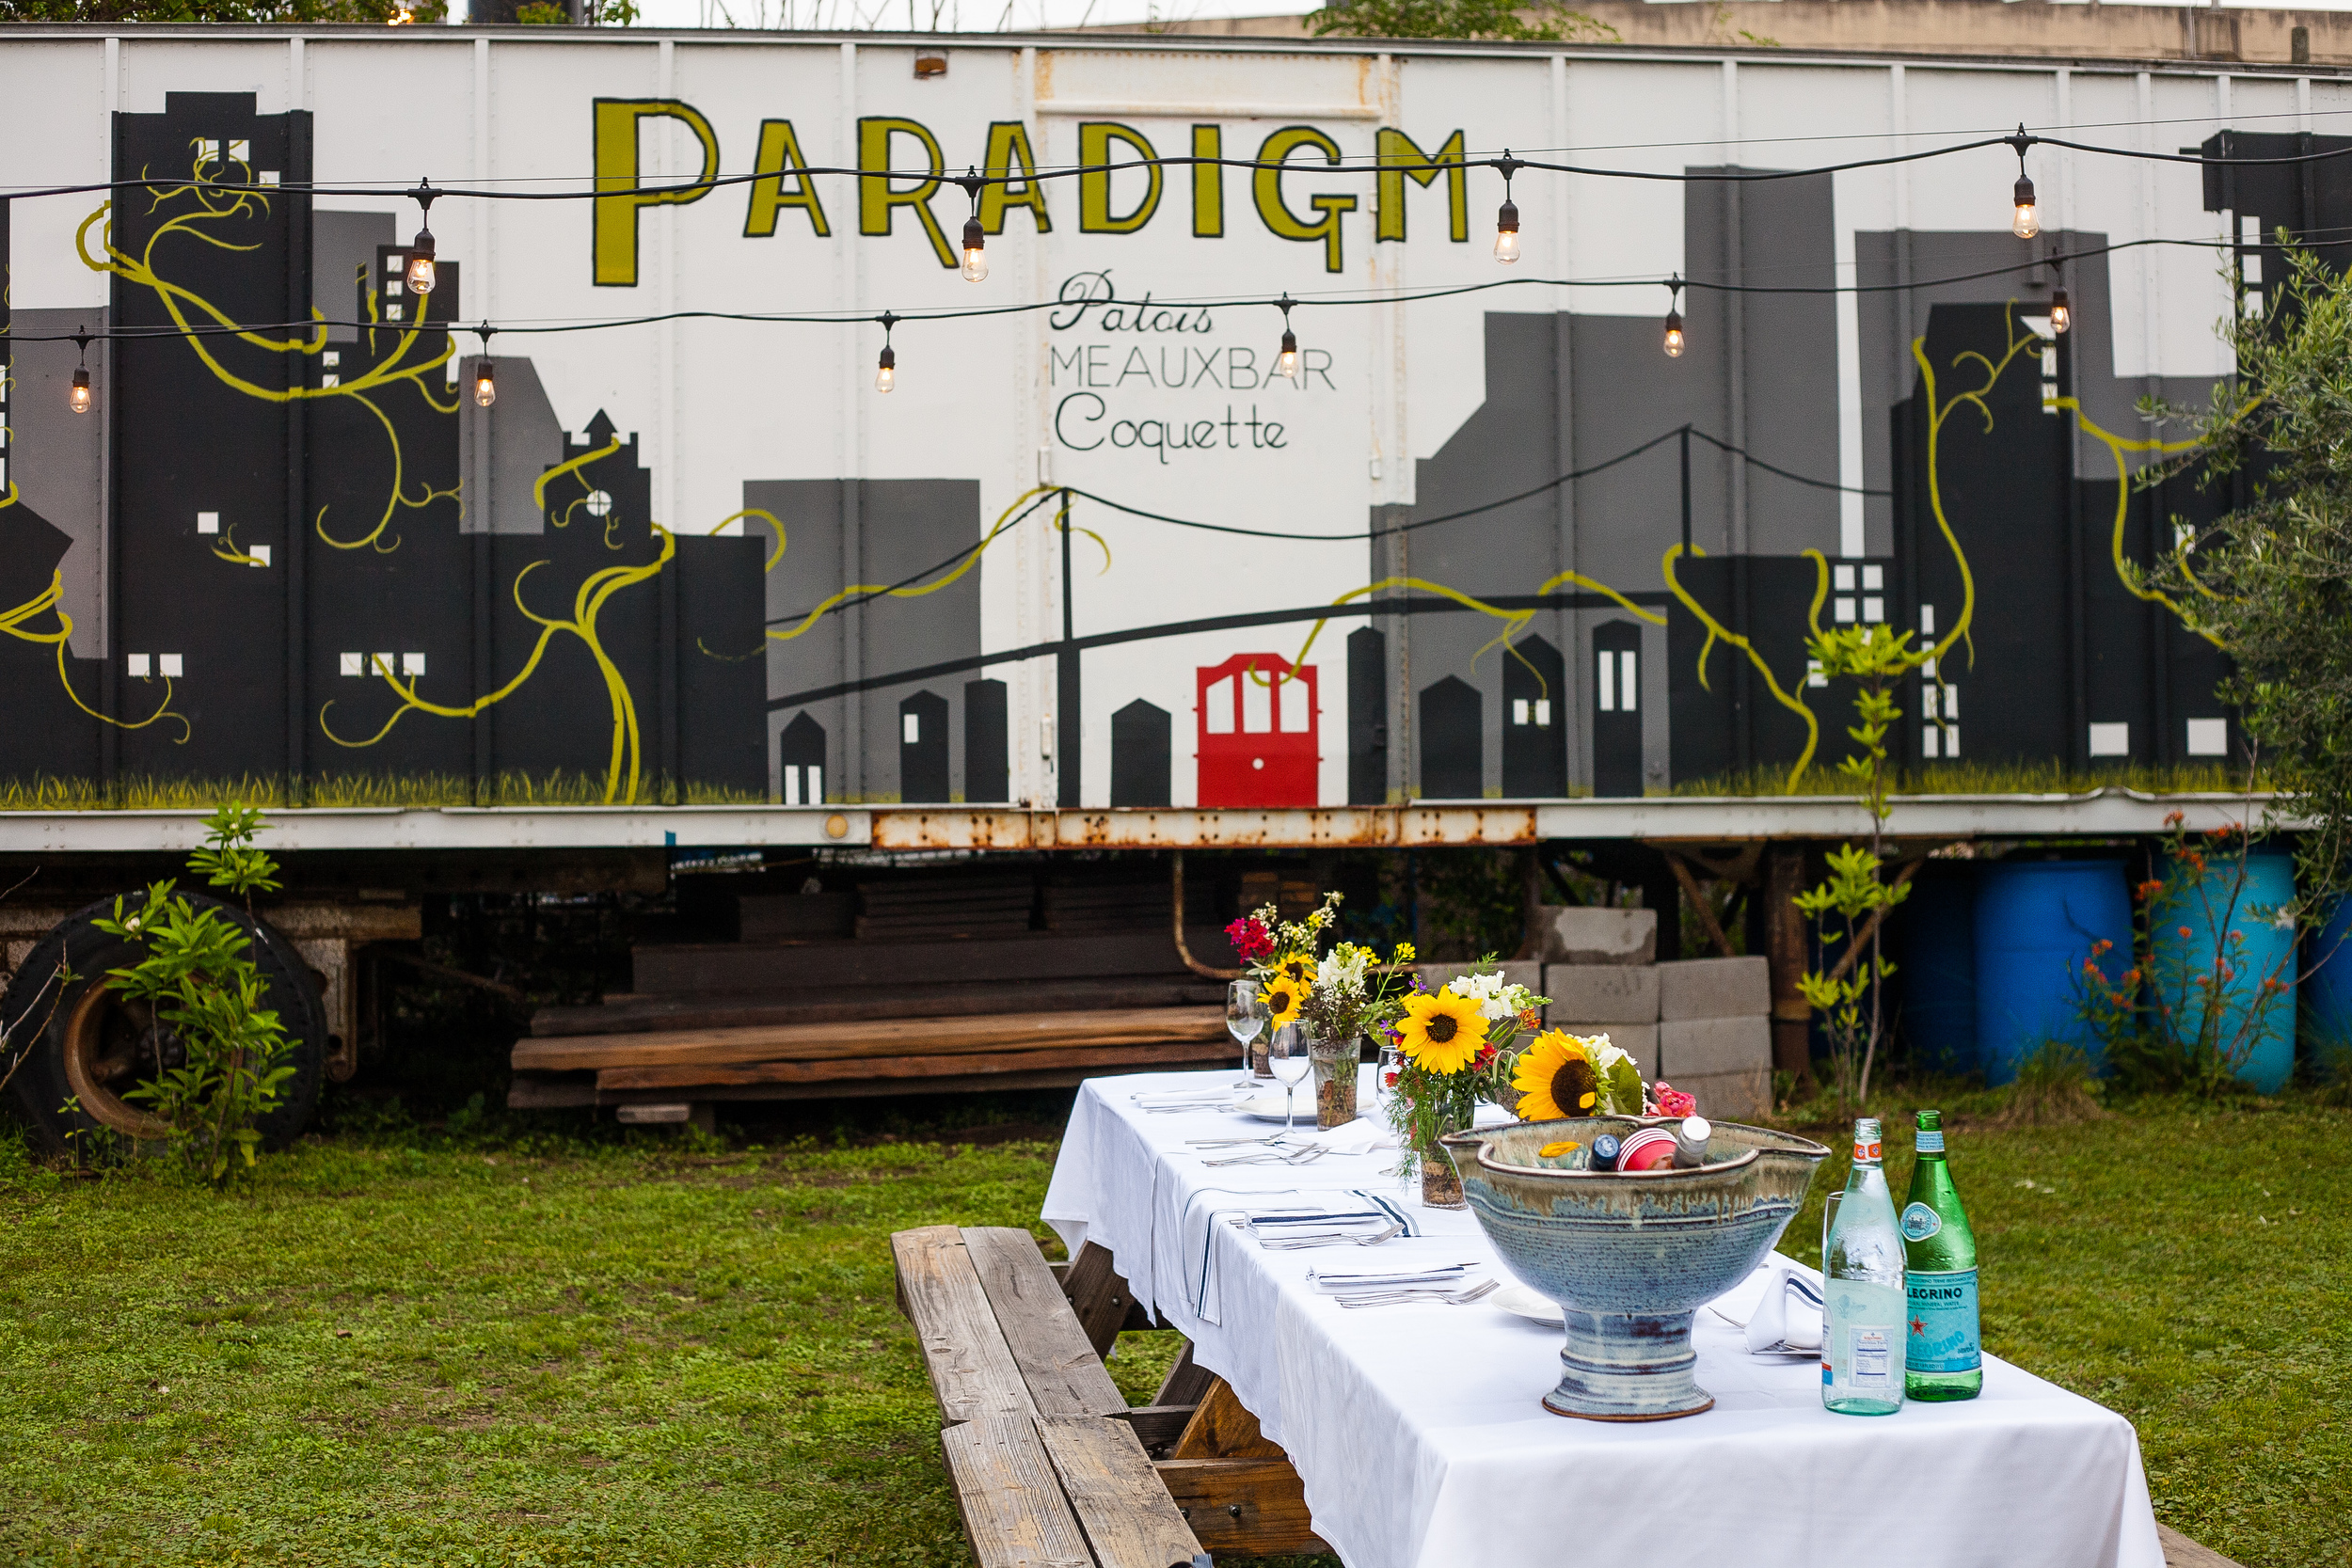 Paradigm Gardens New Orleans outdoor event rental venue space party